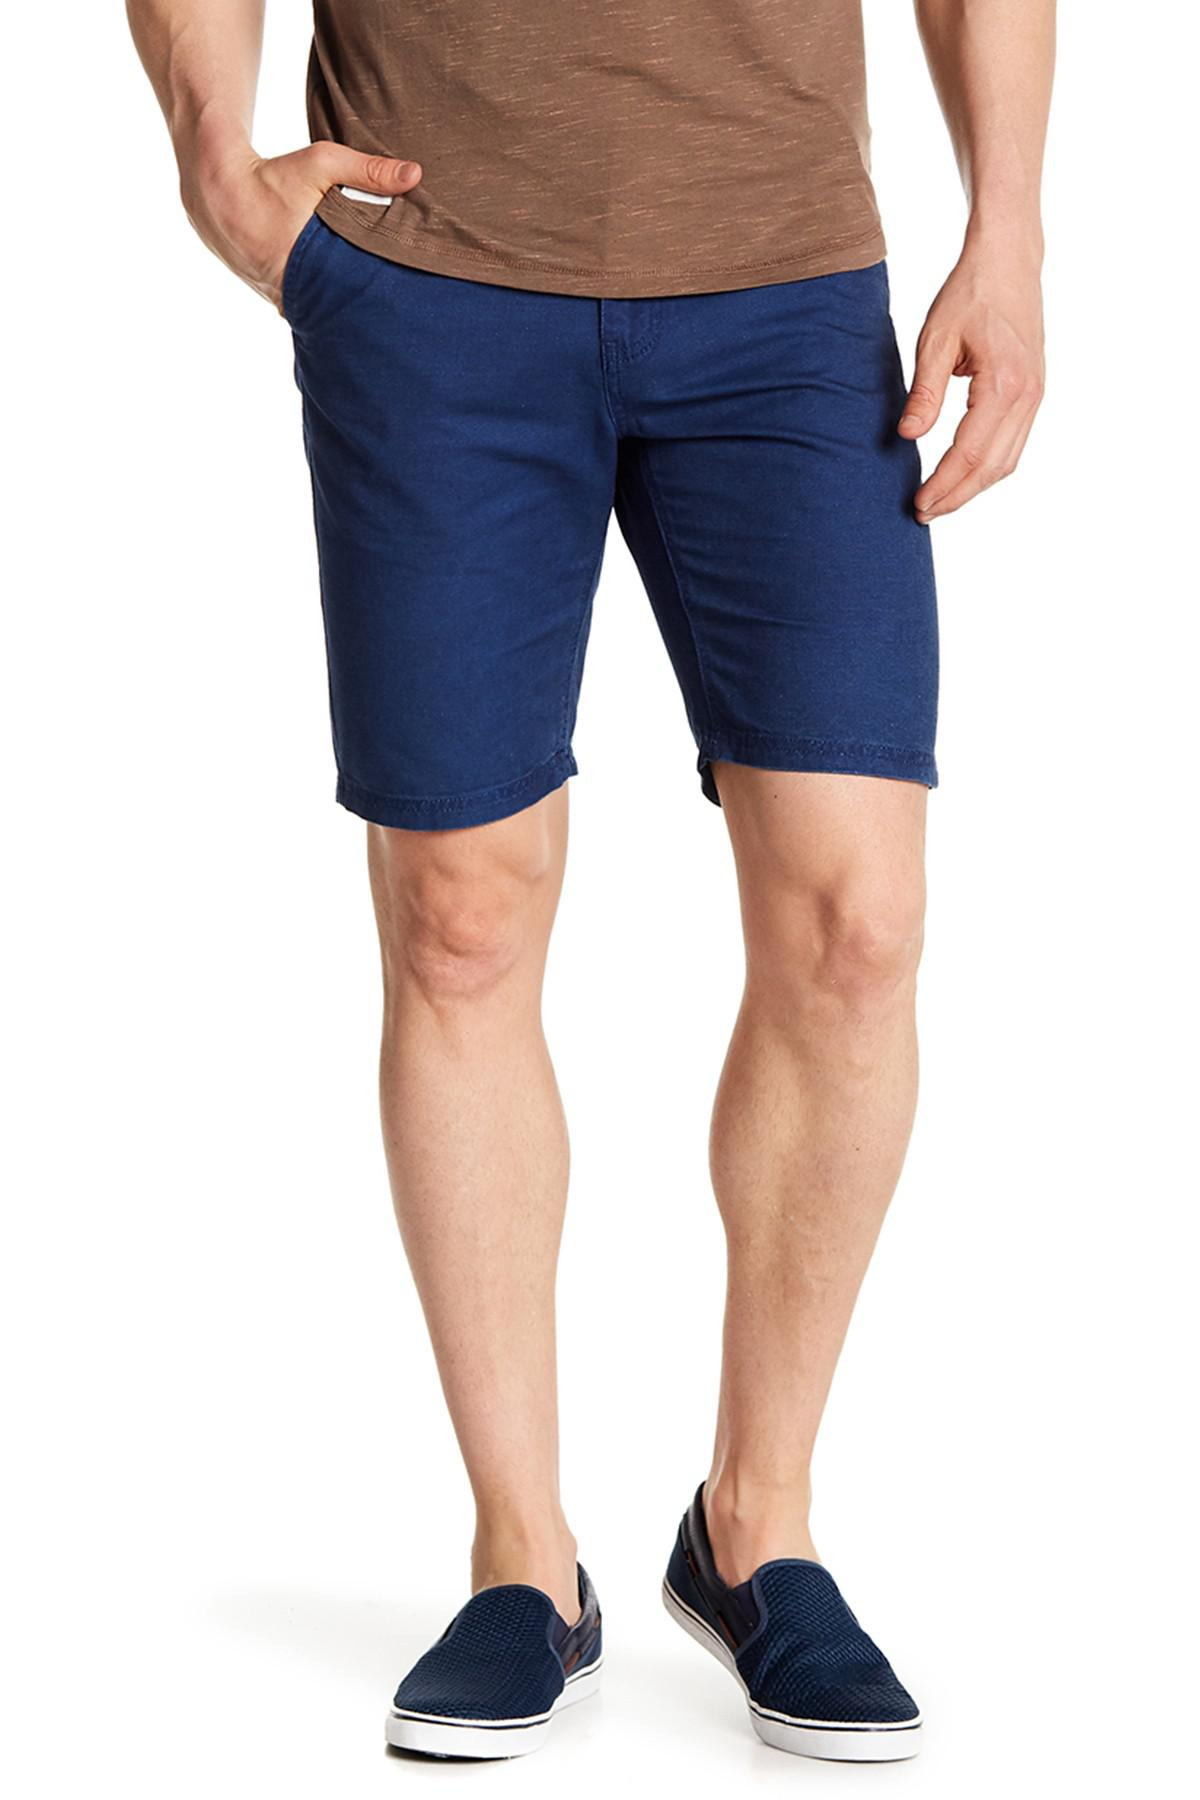 Outlet Big Discount Doniford Chino Drawstring Shorts Free Shipping Buy Discounts Cheap Online Pictures For Sale Xl14sBAko